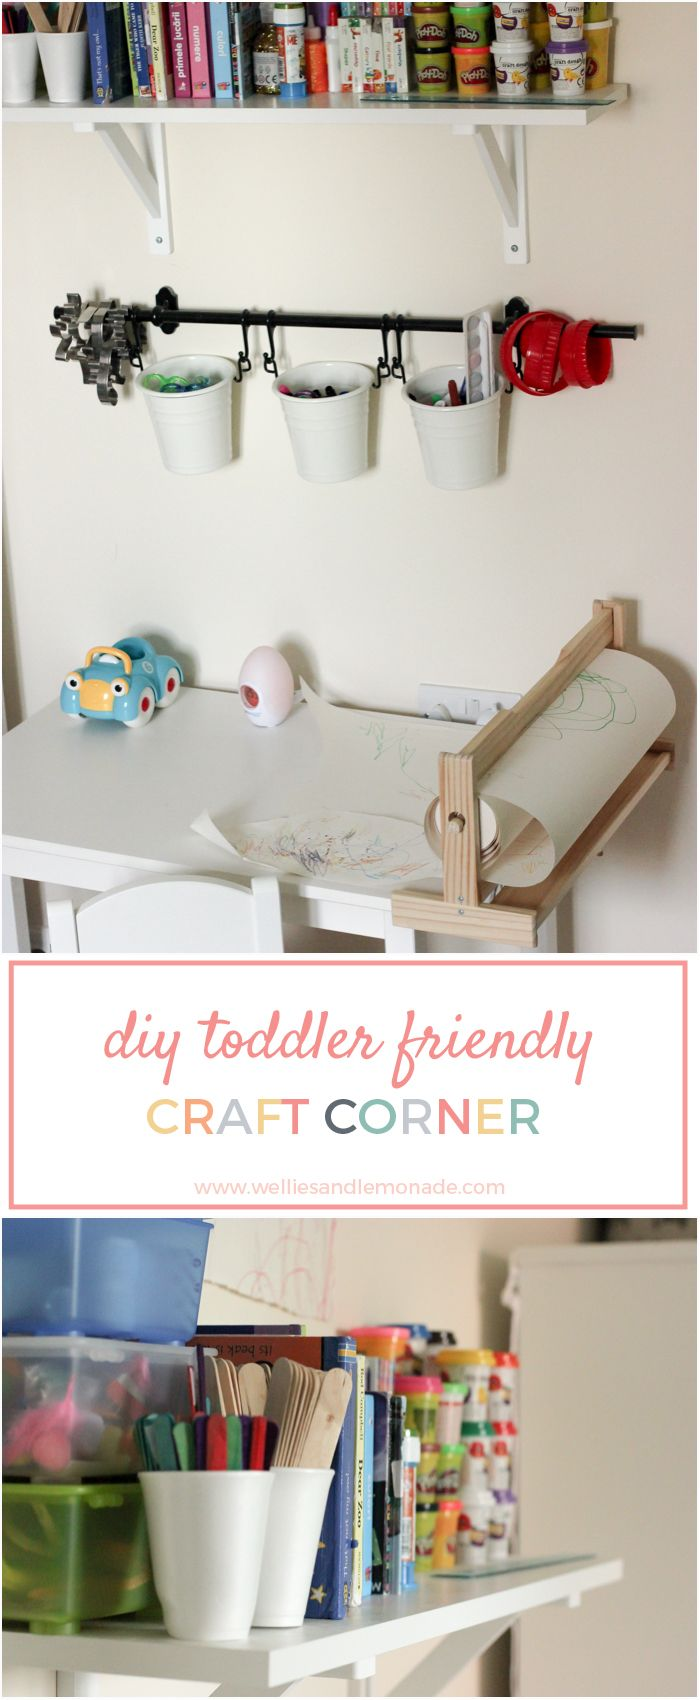 DIY toddler friendly craft corner